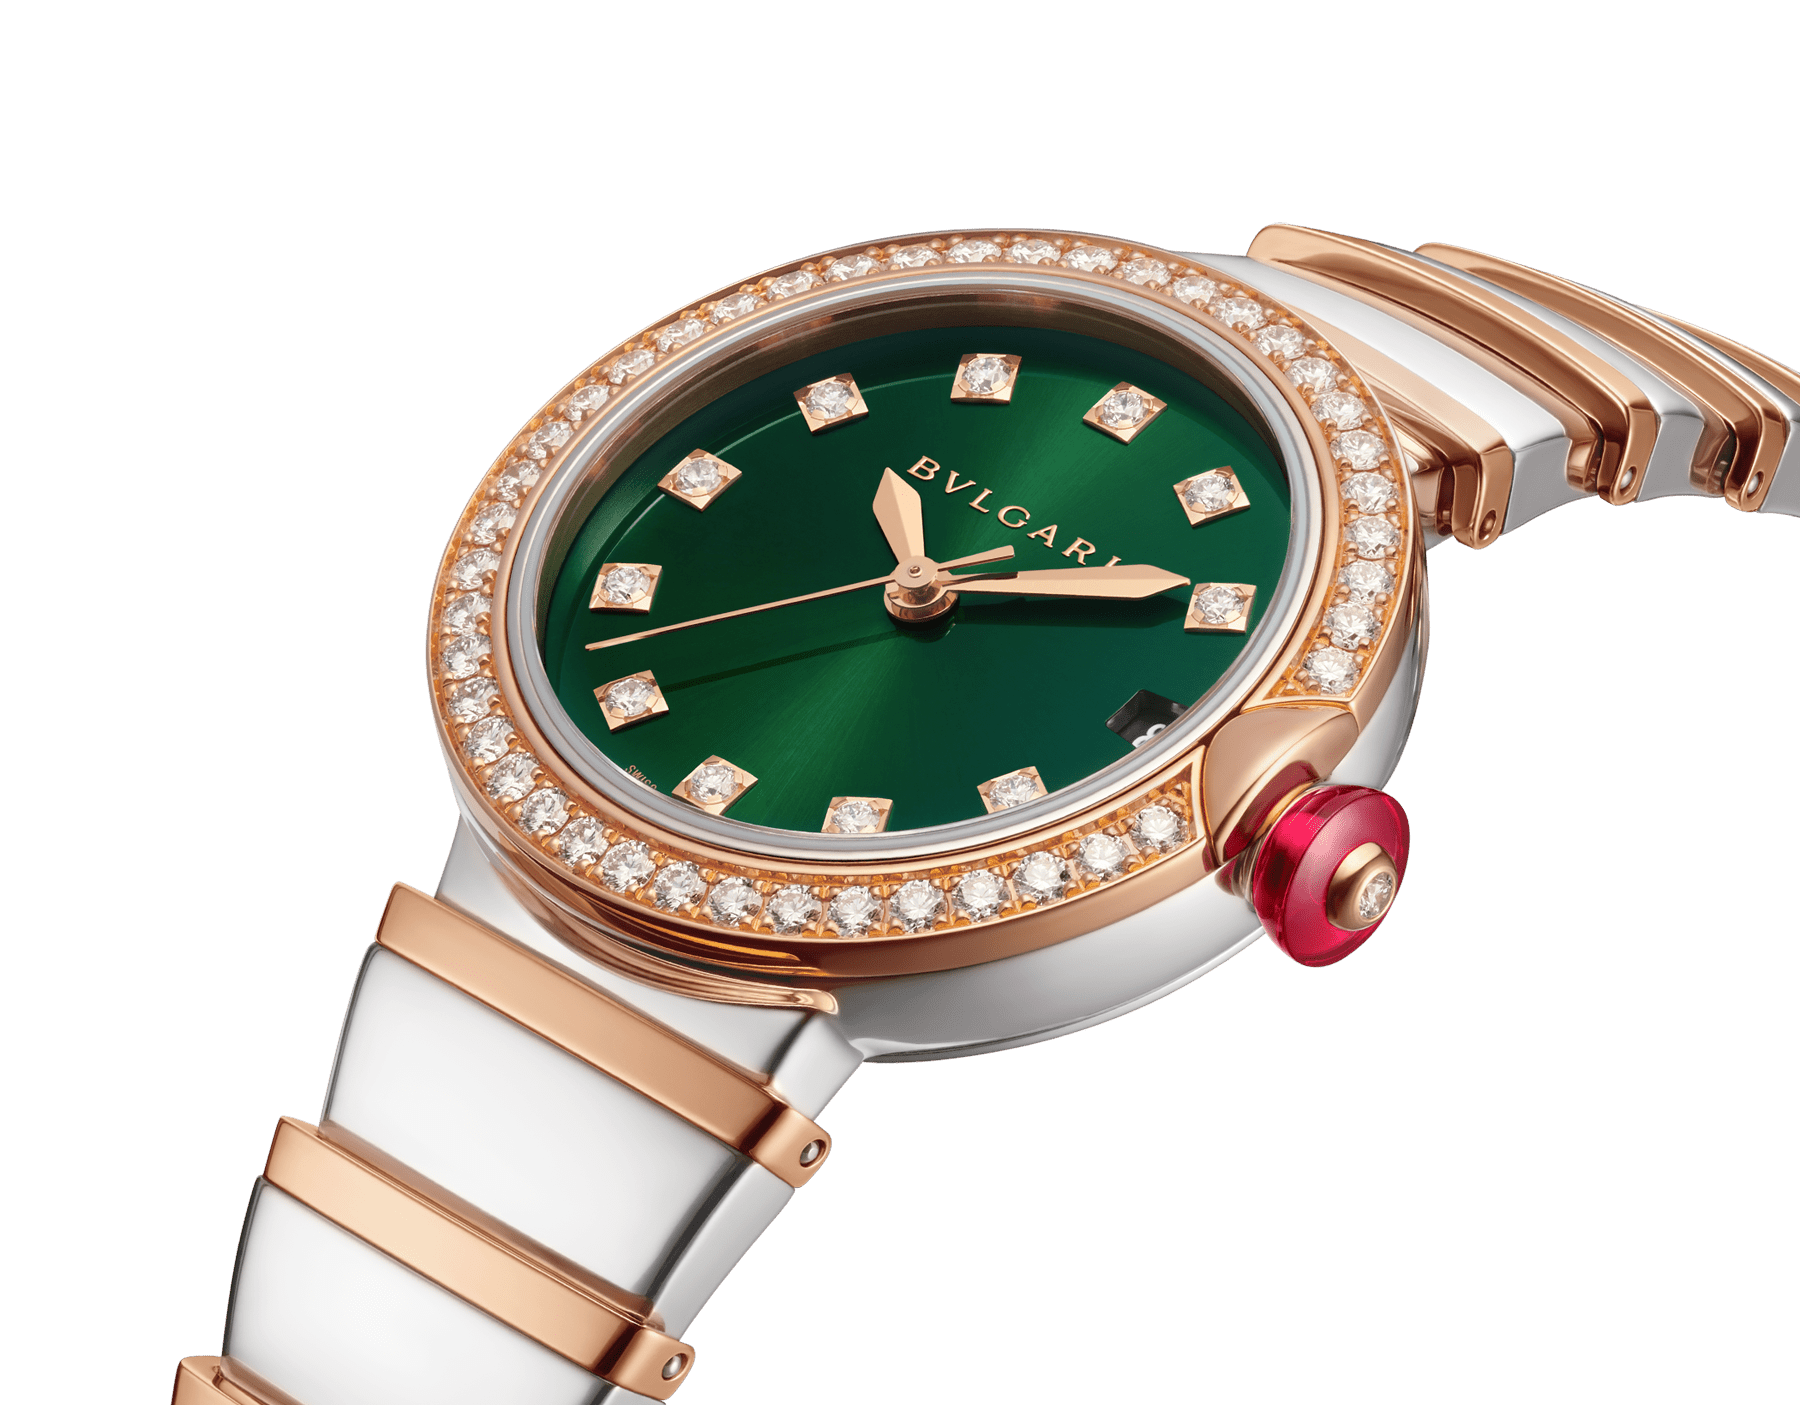 LVCEA watch with stainless steel case, 18 kt rose gold bezel set with brilliant-cut diamonds, green dial, diamond indexes, date opening, stainless steel and 18 kt rose gold bracelet. Exclusive Edition for Middle East 103289 image 2